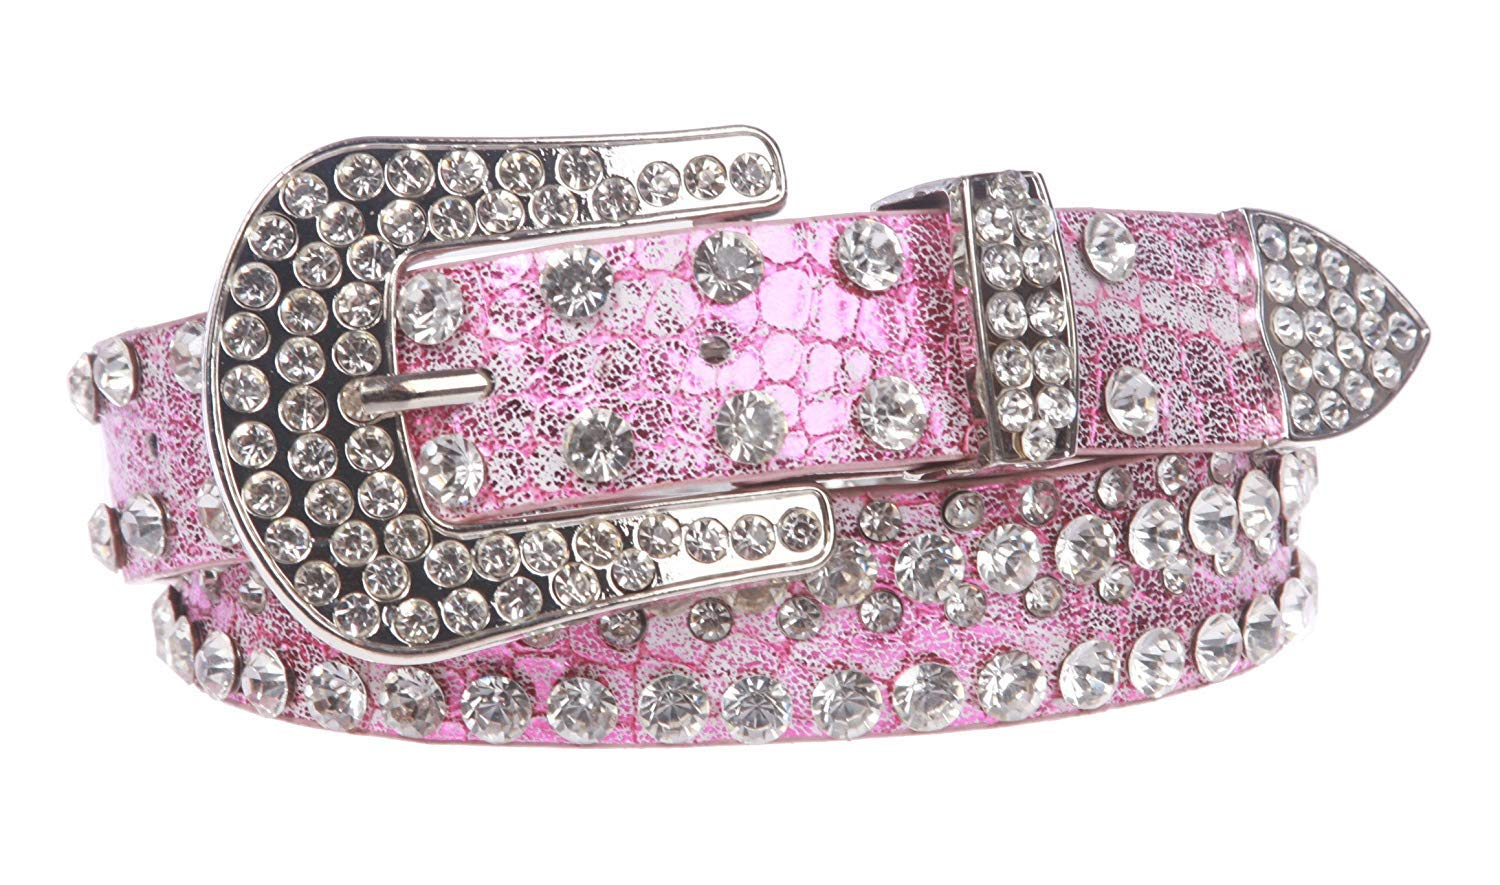 MONIQUE Kids Stylish Western Cowgirl Rhinestone Studded Skinny 27 mm Wide Belt,Hot Pink 28 Inch